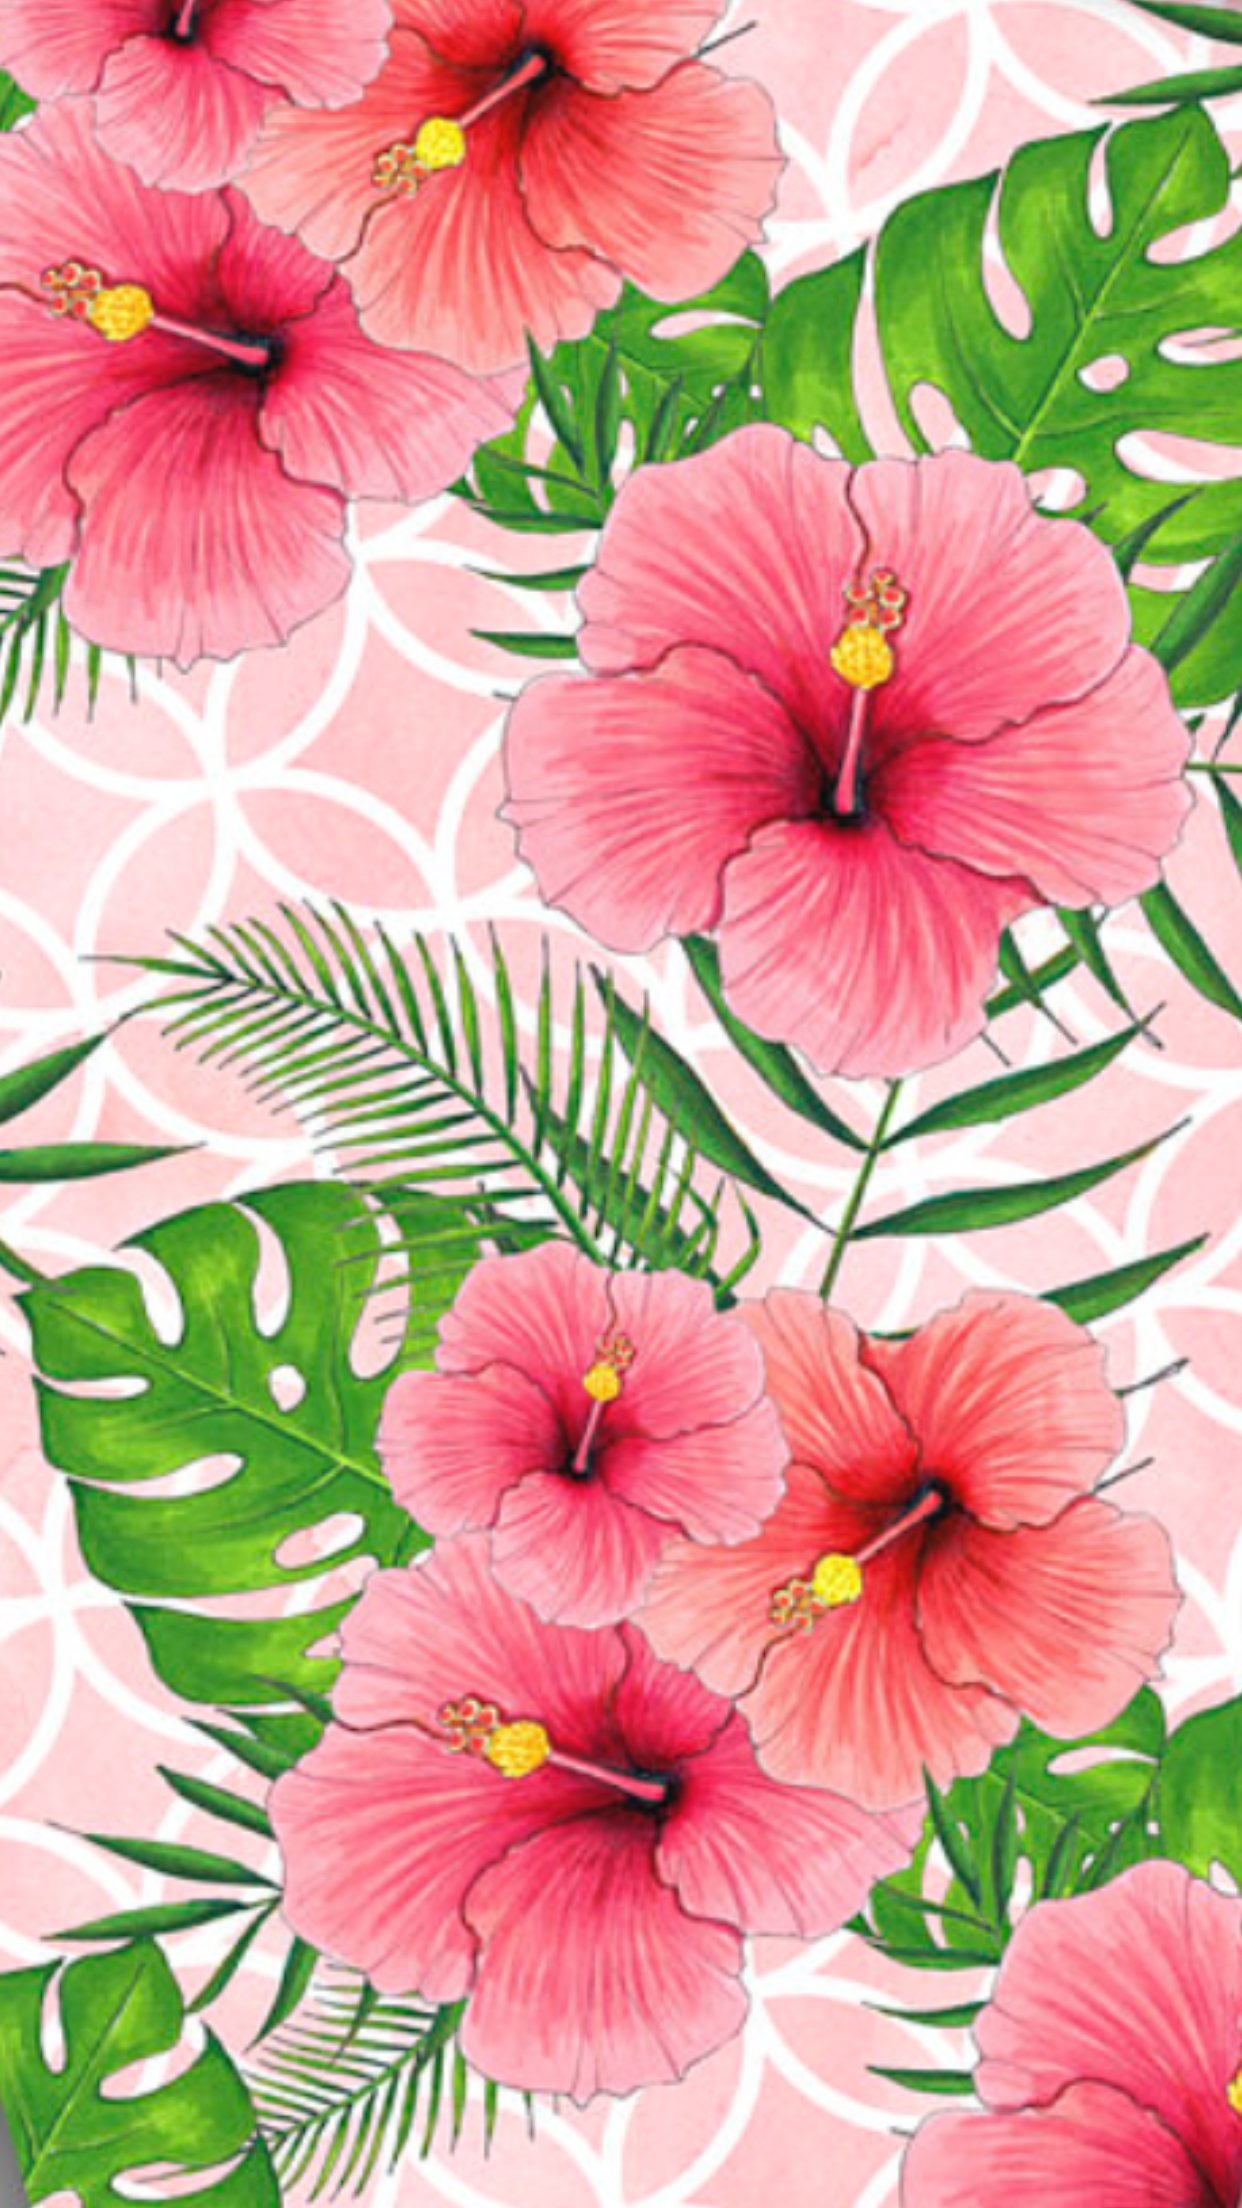 Tropical floral pattern Tropical floral pattern, Floral